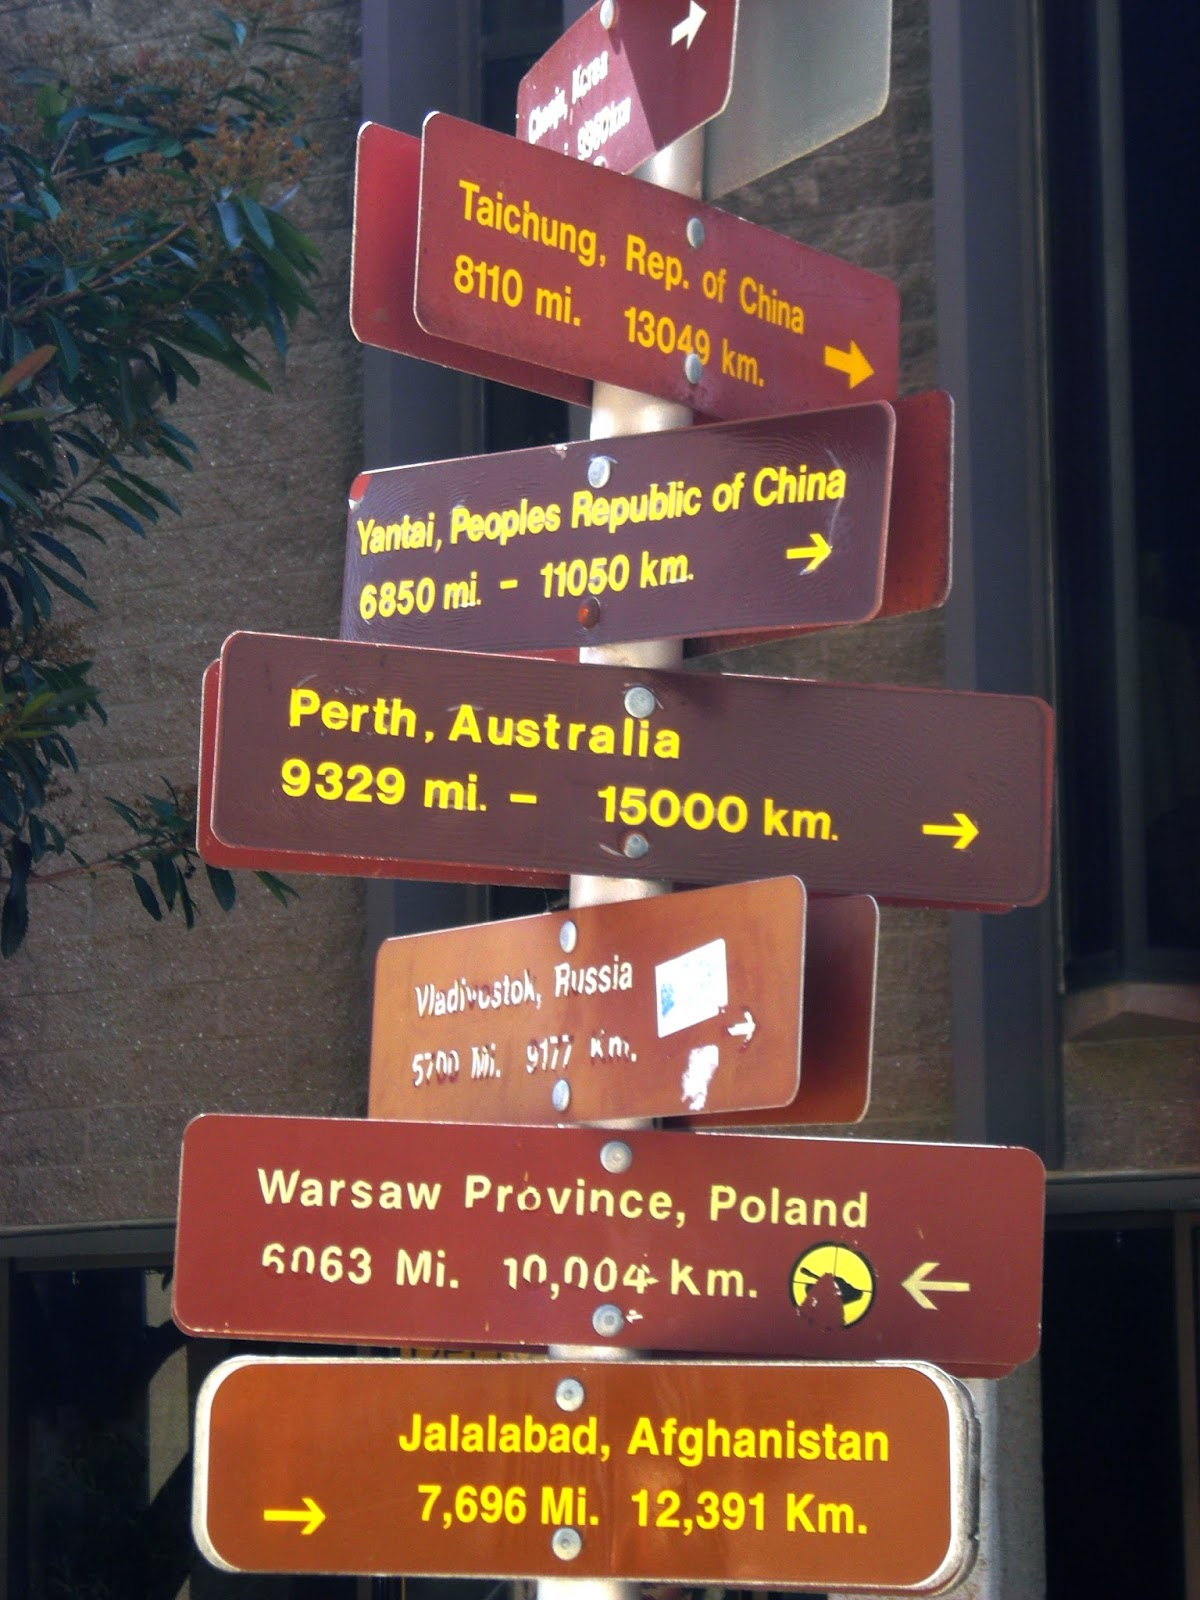 Road sign, San Diego showing distance to other world cities